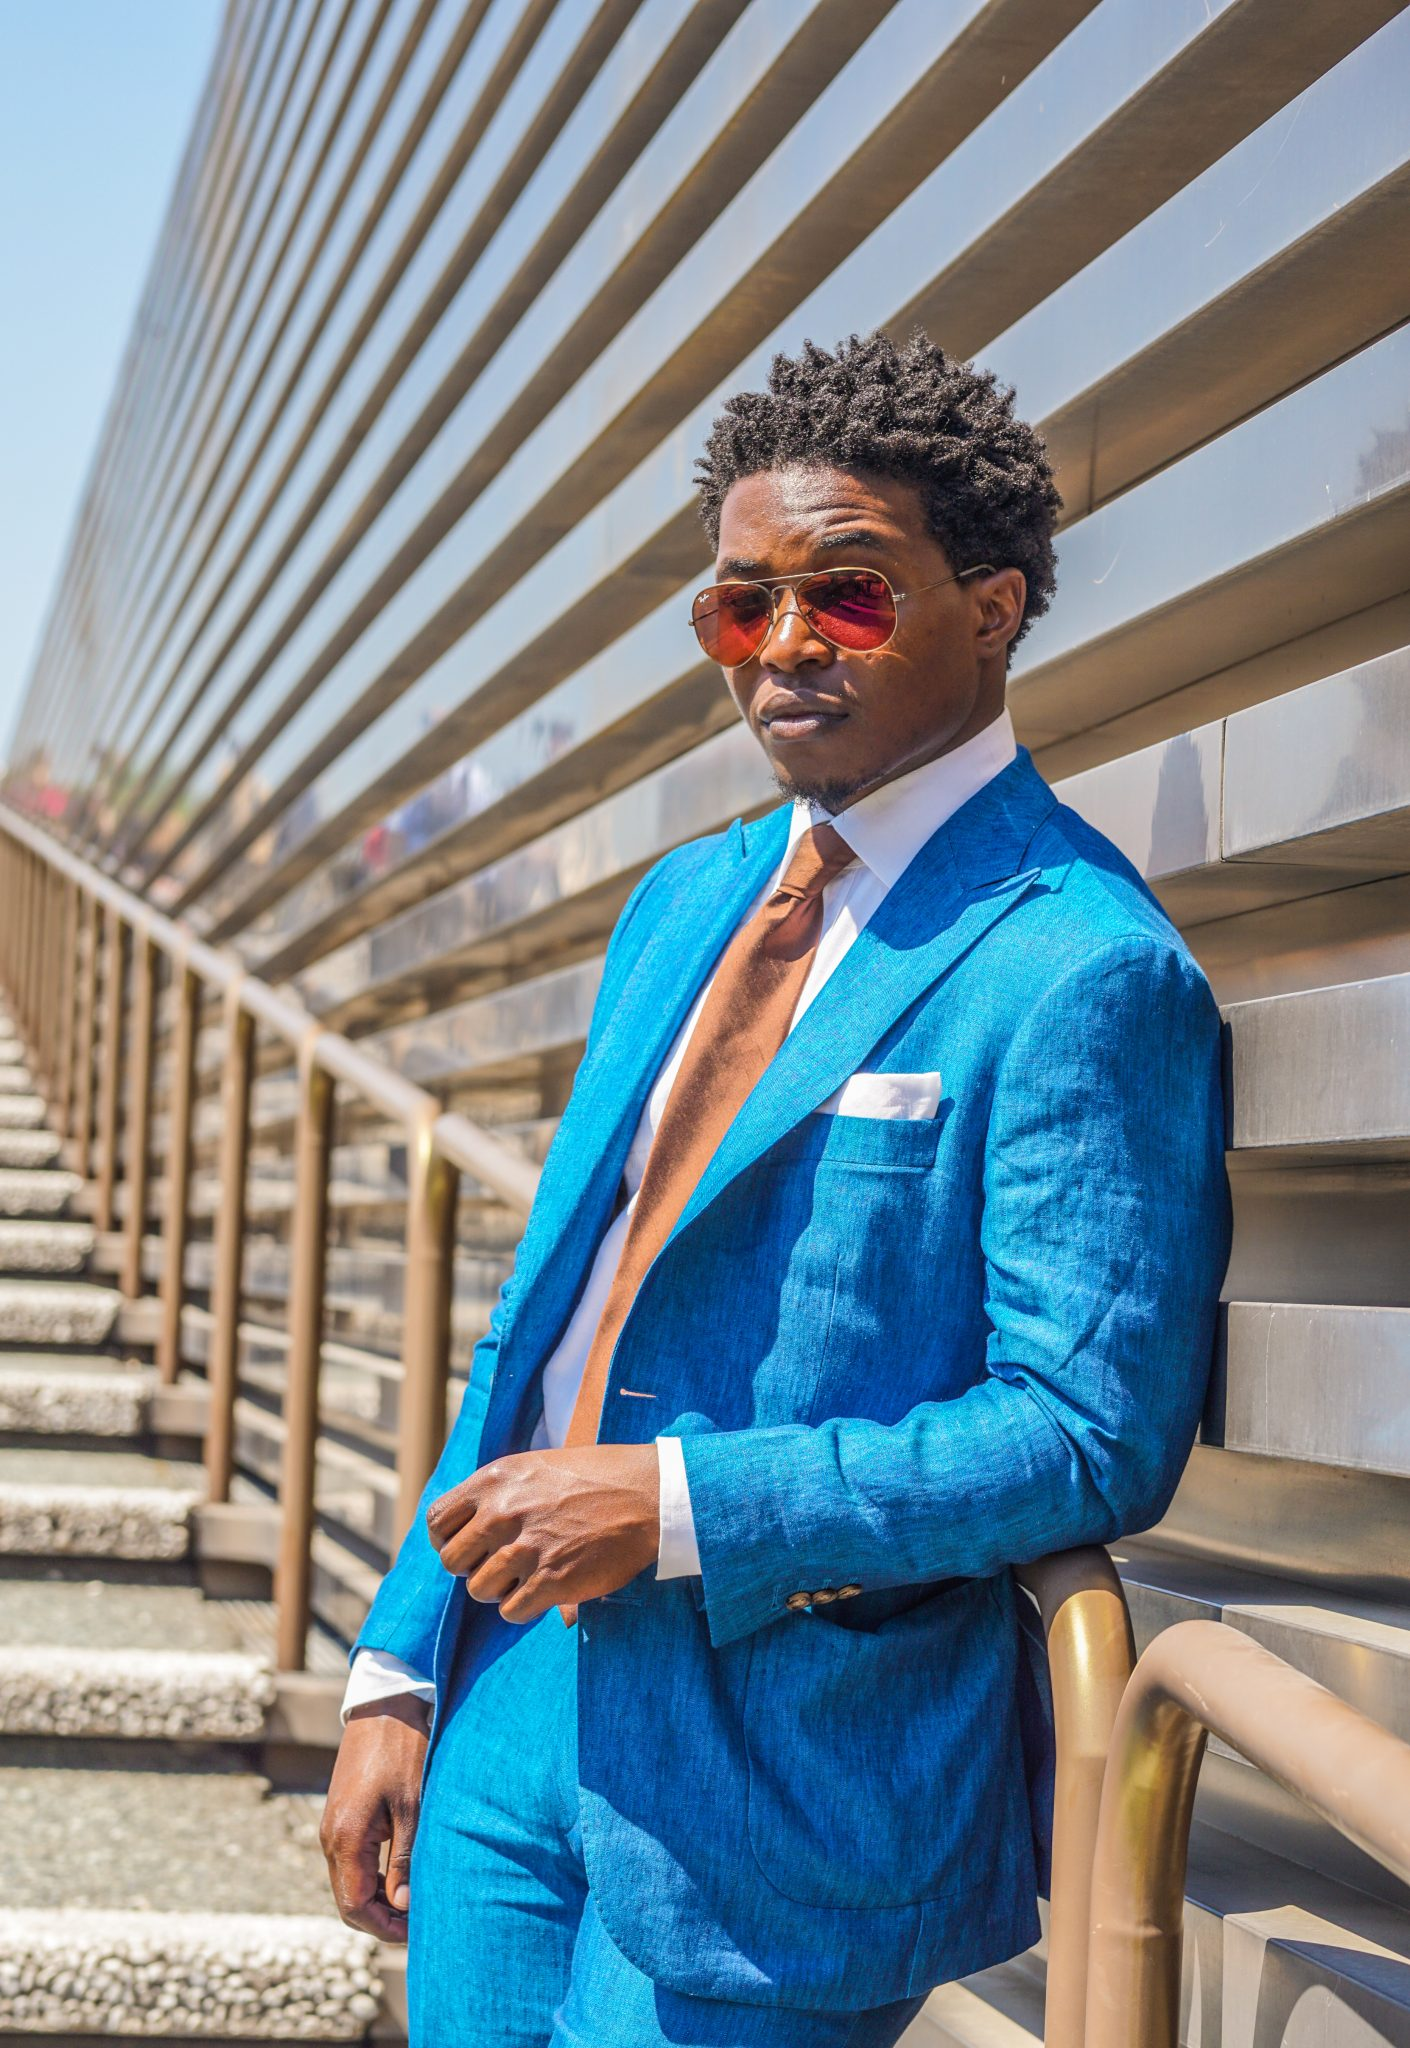 dapper advisor-pitti uomo 92-oliver wicks-teal linen suit-red ray ban sunglasses